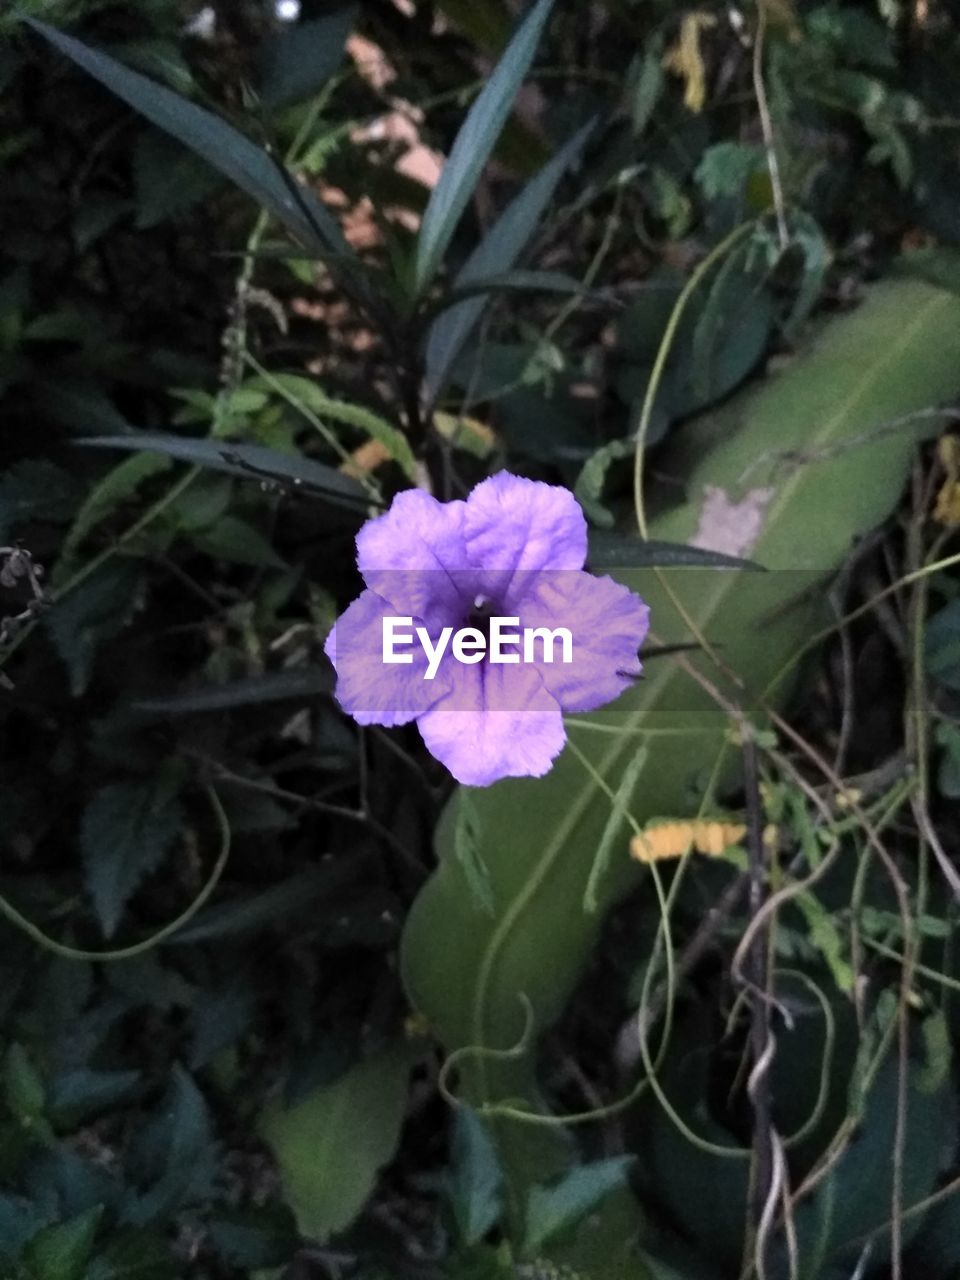 flower, growth, fragility, no people, nature, blooming, petal, plant, outdoors, day, beauty in nature, freshness, leaf, flower head, close-up, periwinkle